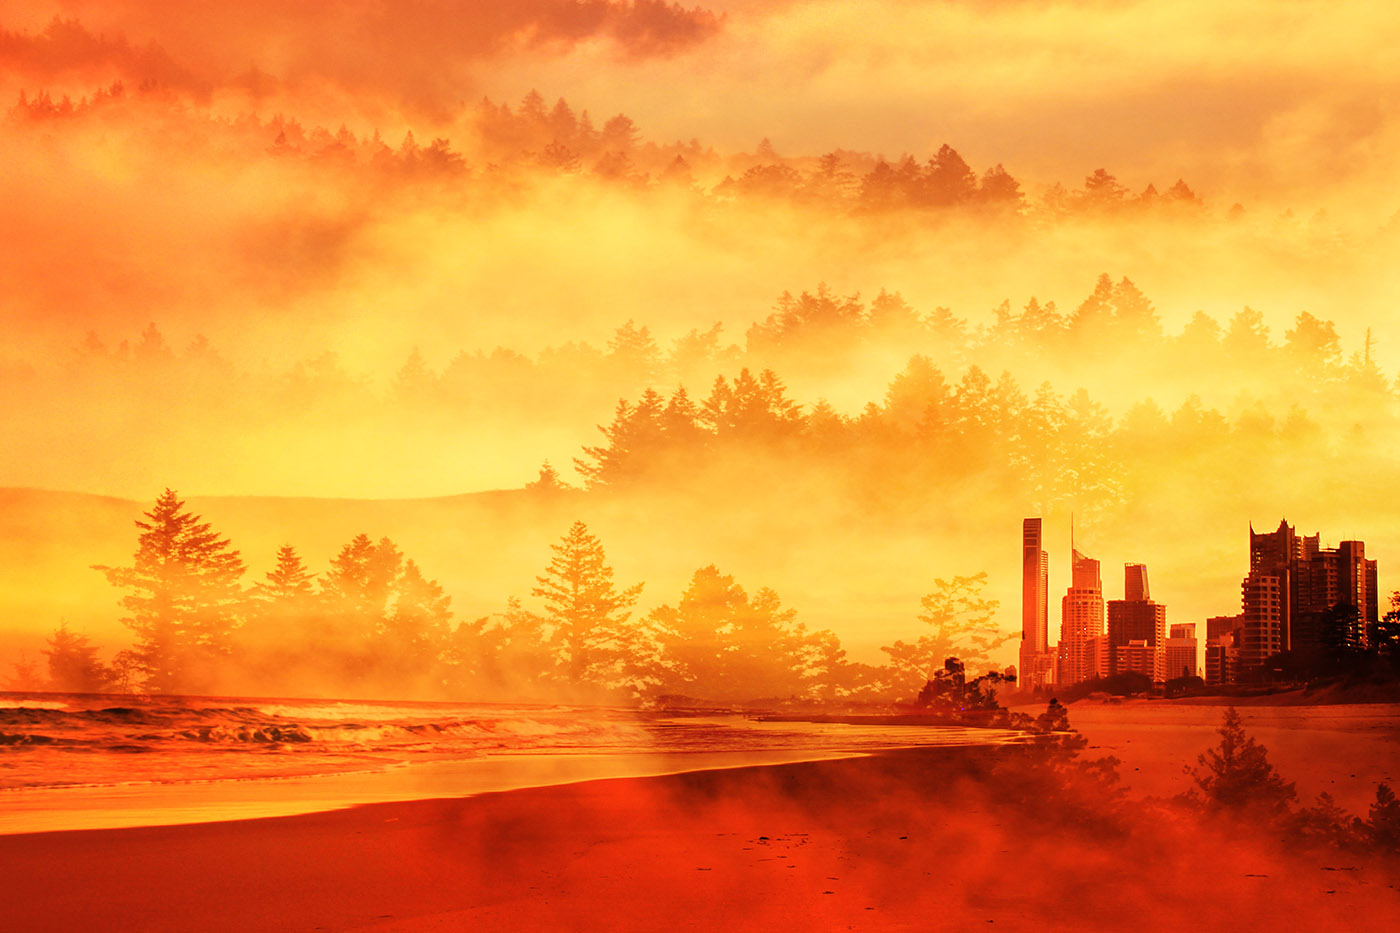 Colorful Apocalyptic Imagery 05 - RF Stock Image